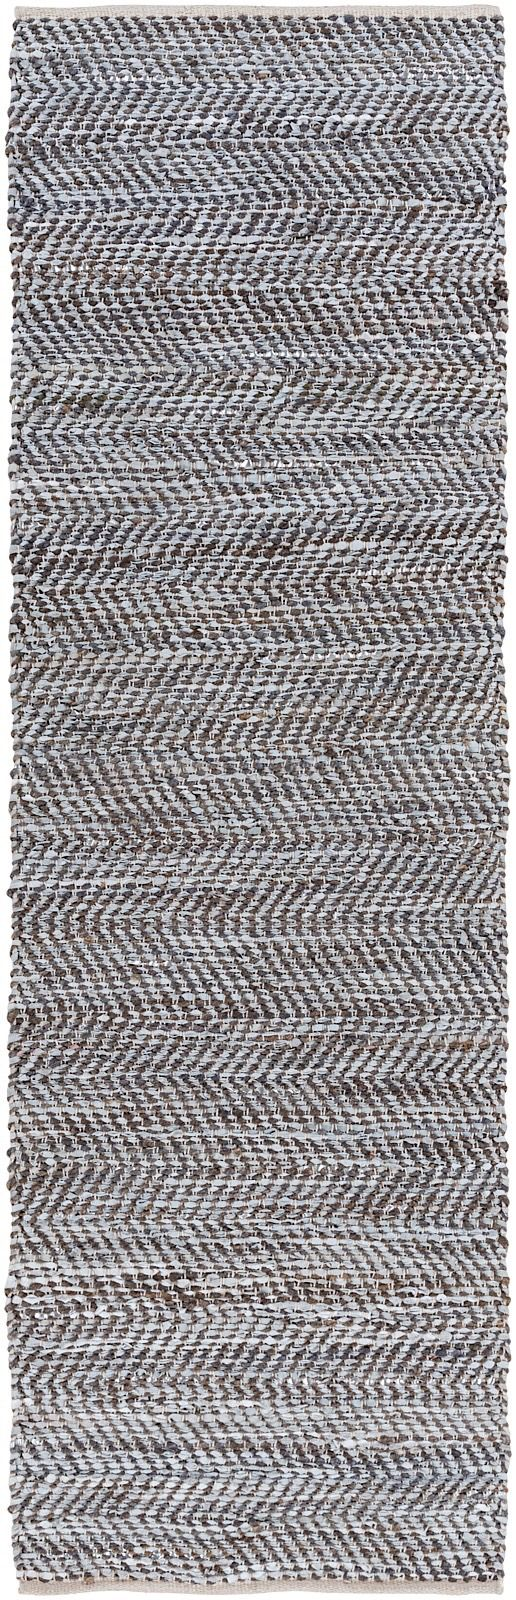 surya gideon contemporary area rug collection